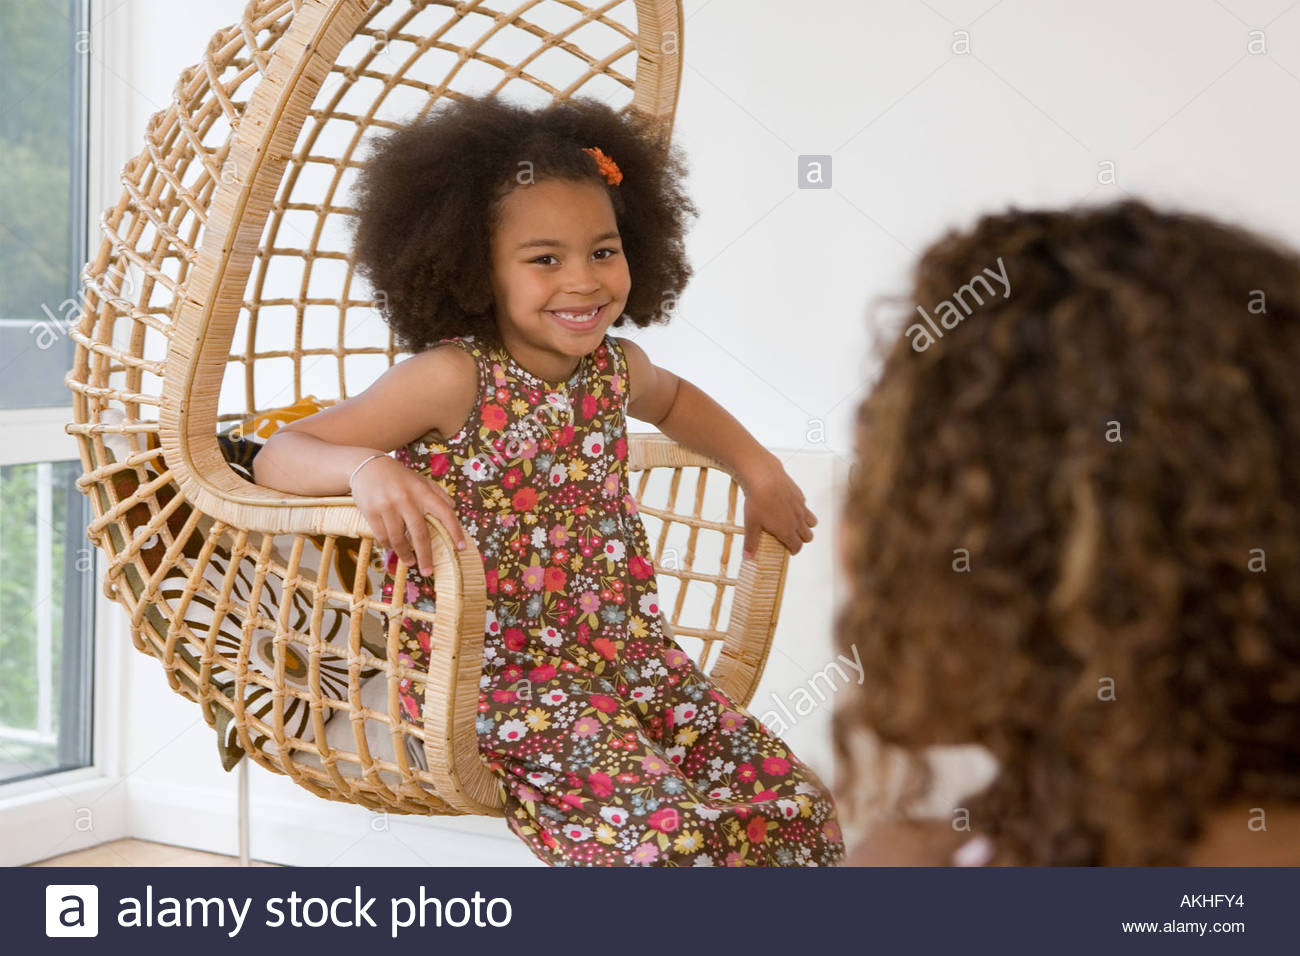 Girl in a wicker chair - Stock Image